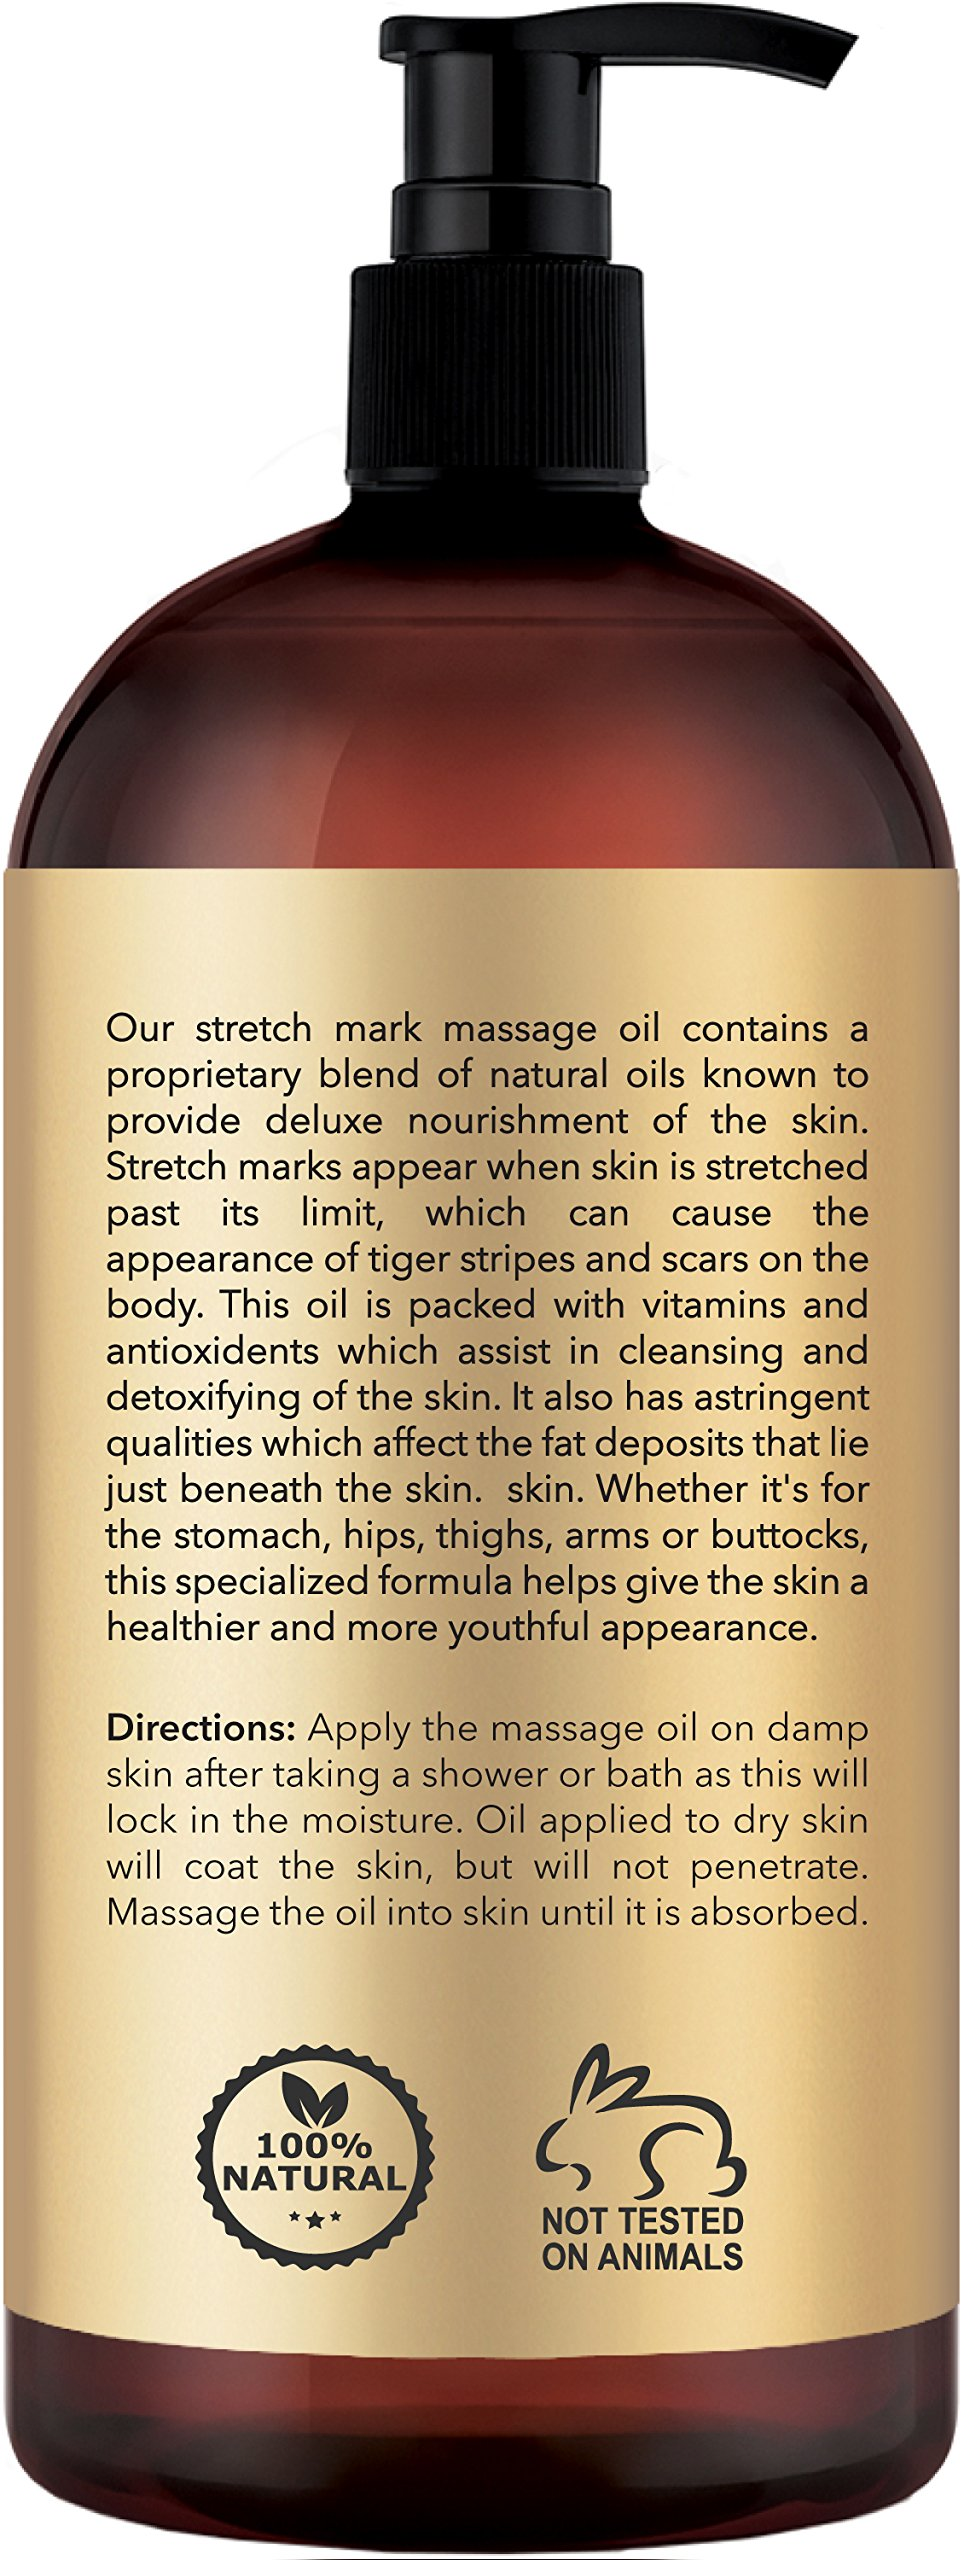 Anti Stretch Marks Massage Oil – All Natural Ingredients – Penetrates Skin 6X Deeper Than Stretch Mark Cream - Targets Unwanted Fat Tissues & Improves Skin Firmness - 8 OZ by PURE PLANT HOME (Image #2)